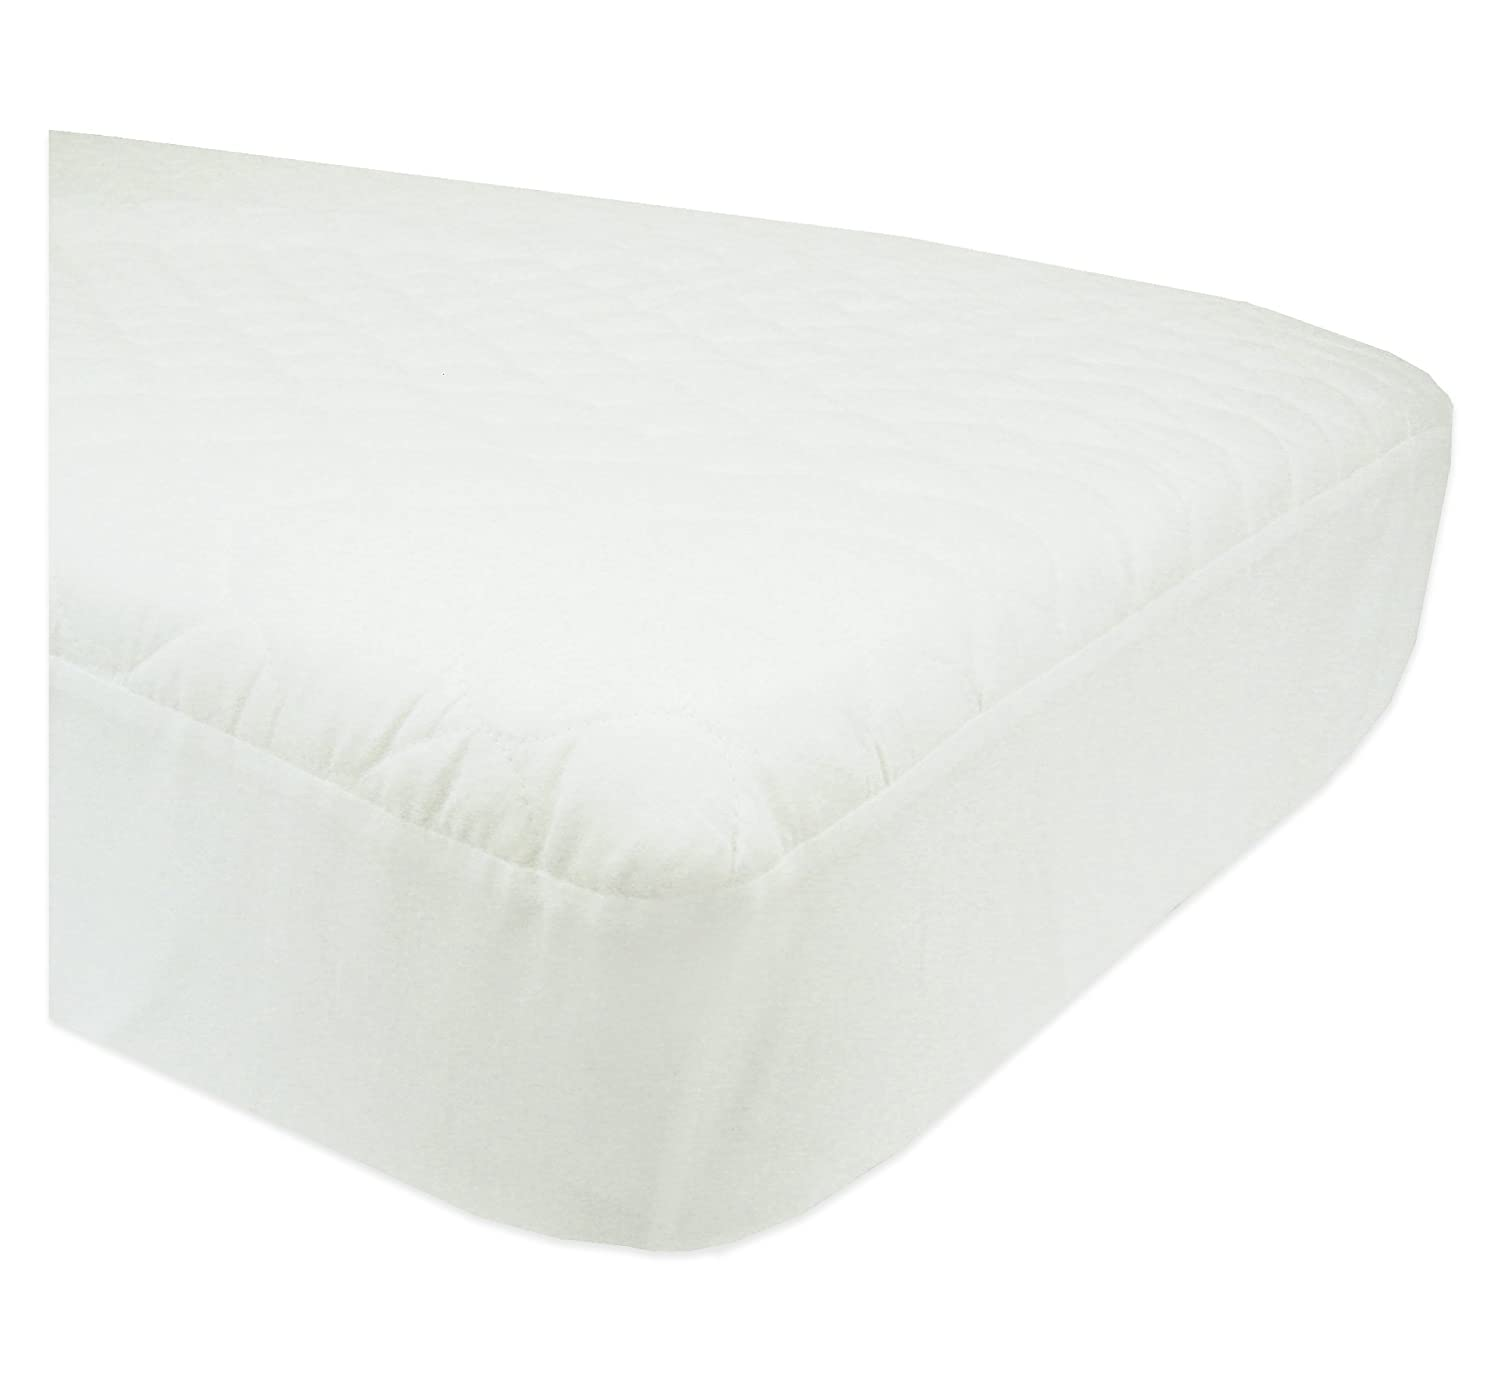 amazoncom abc waterproof quilted cribtoddler bed matress padfitted white crib mattress cover waterproof baby